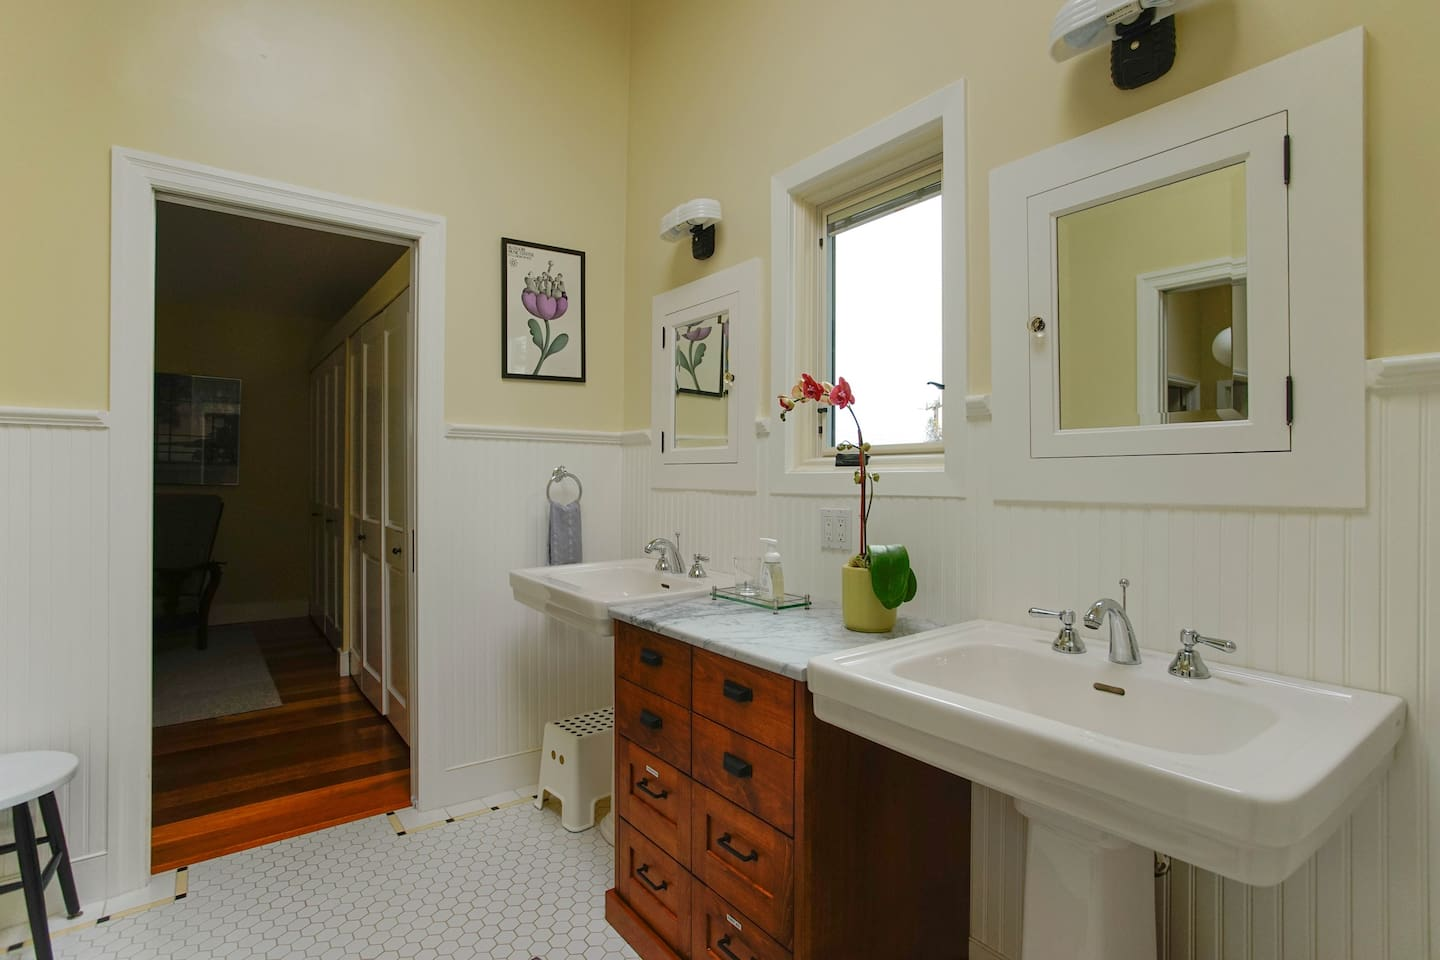 Double sinks with custom craftsman details. Plenty of room to get ready.